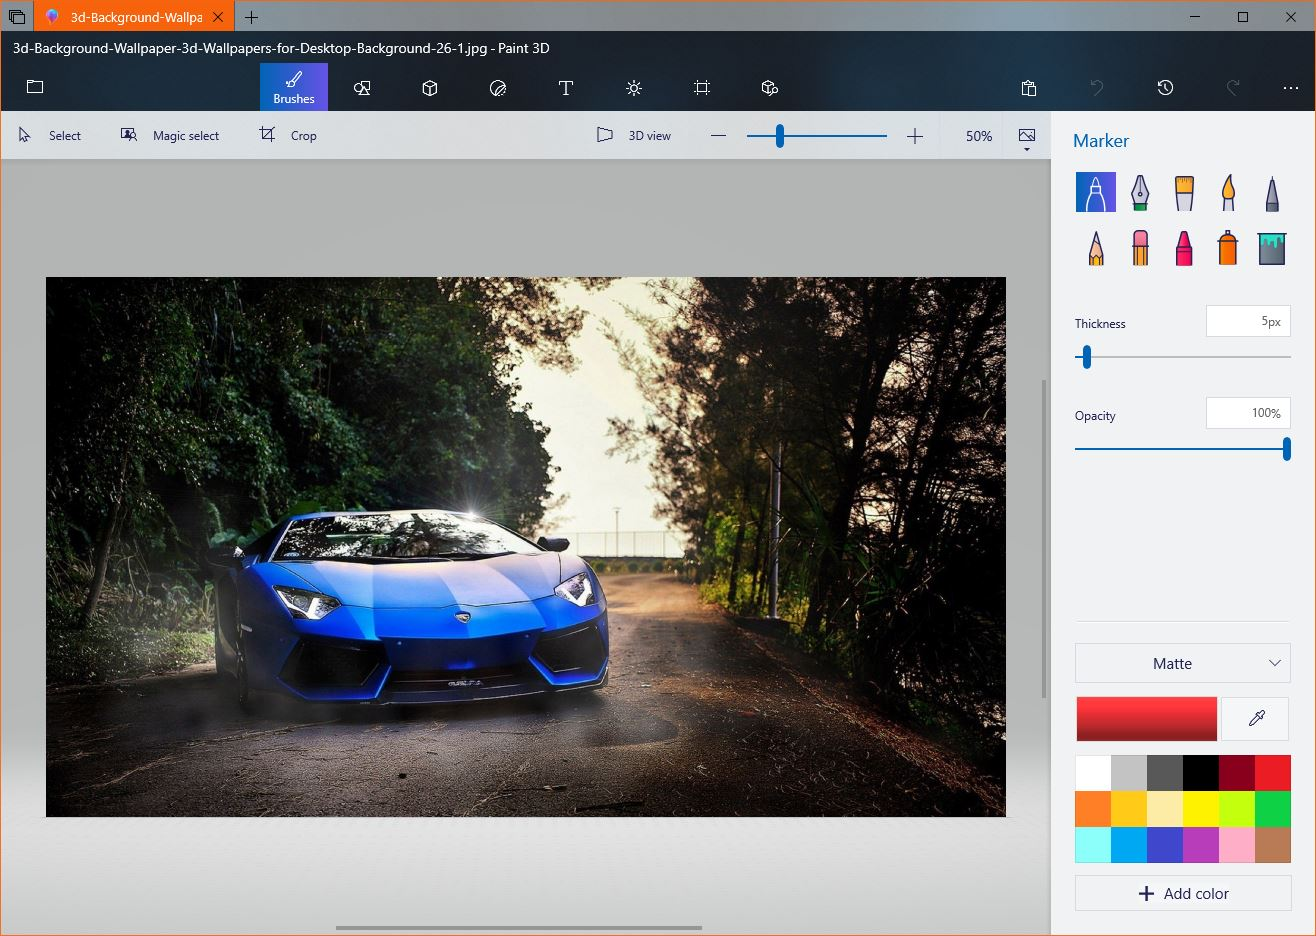 Microsoft Releases Update For Windows 10 Paint 3D App